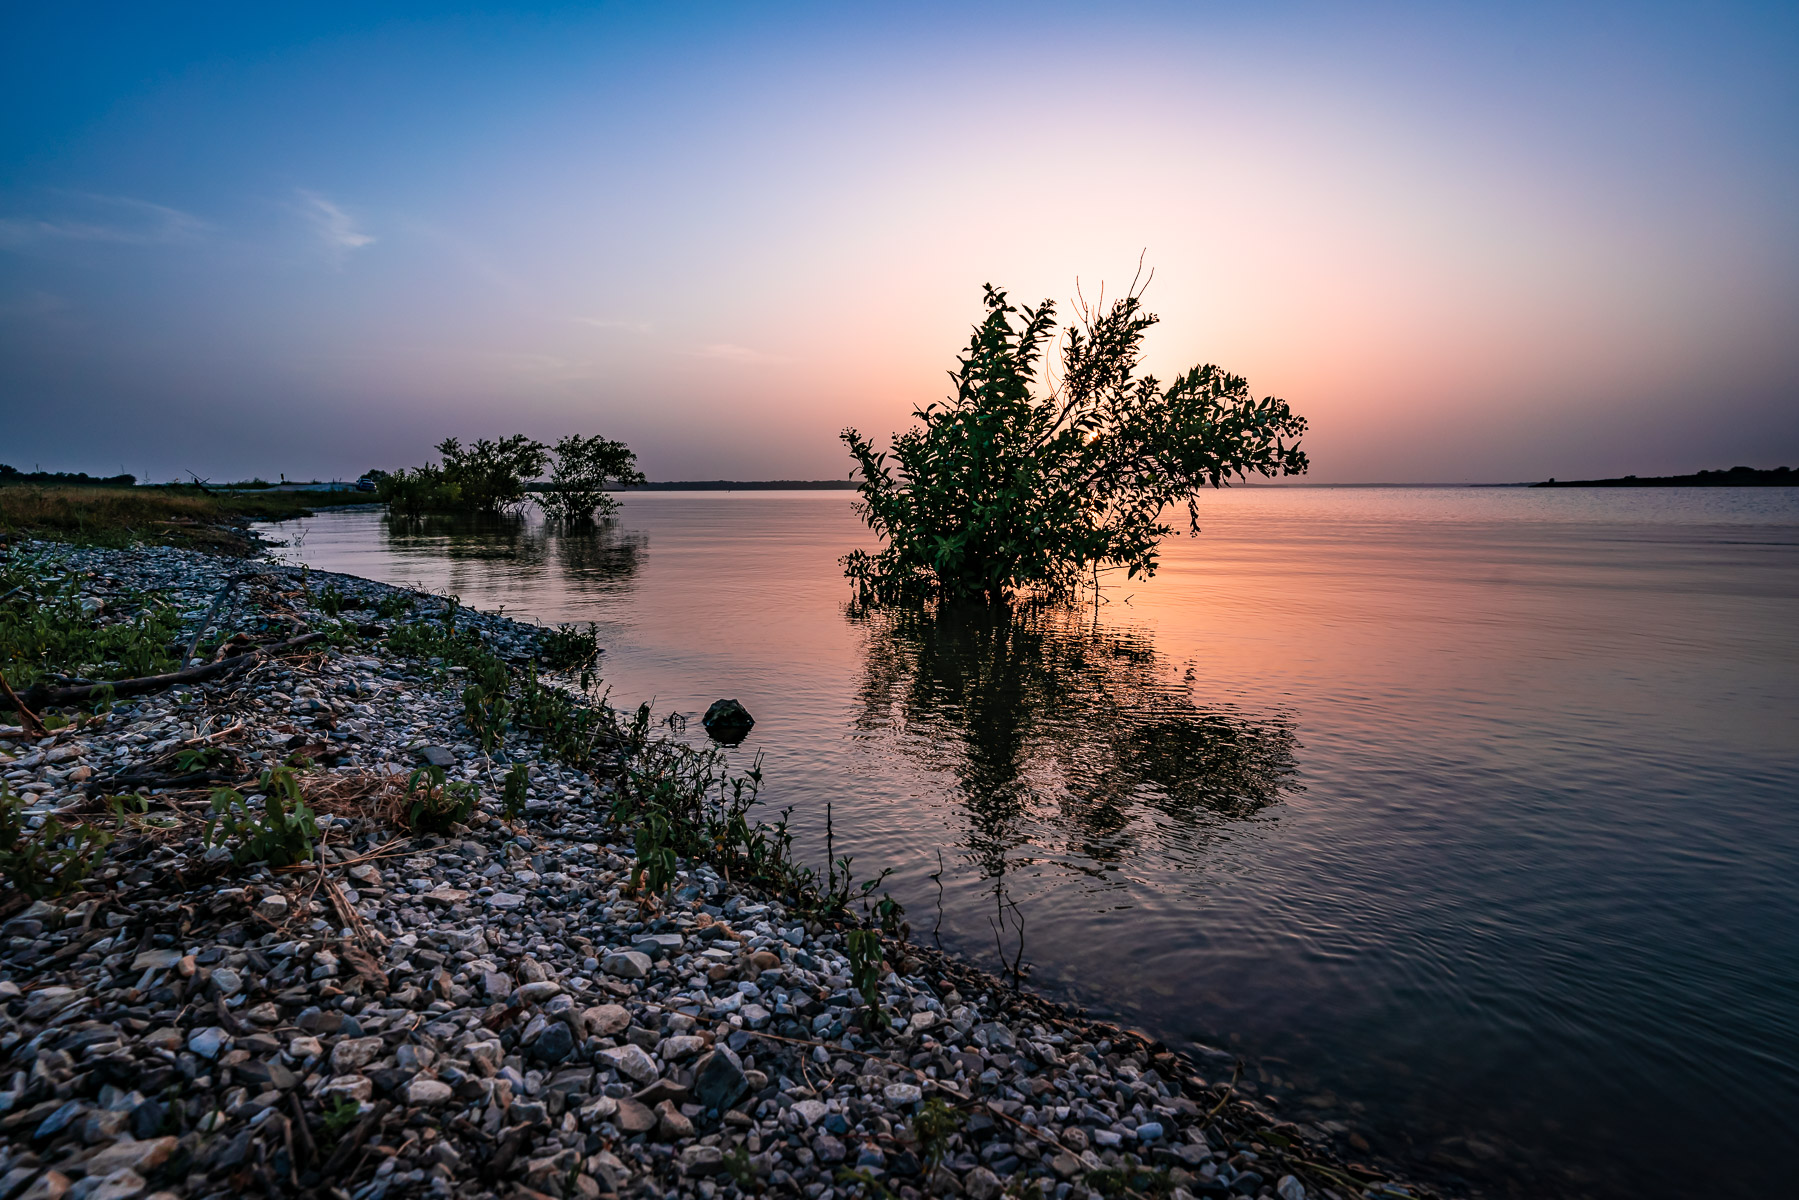 The sun sets on the Big Mineral Arm of Lake Texoma at the Hagerman National Wildlife Refuge, Texas.